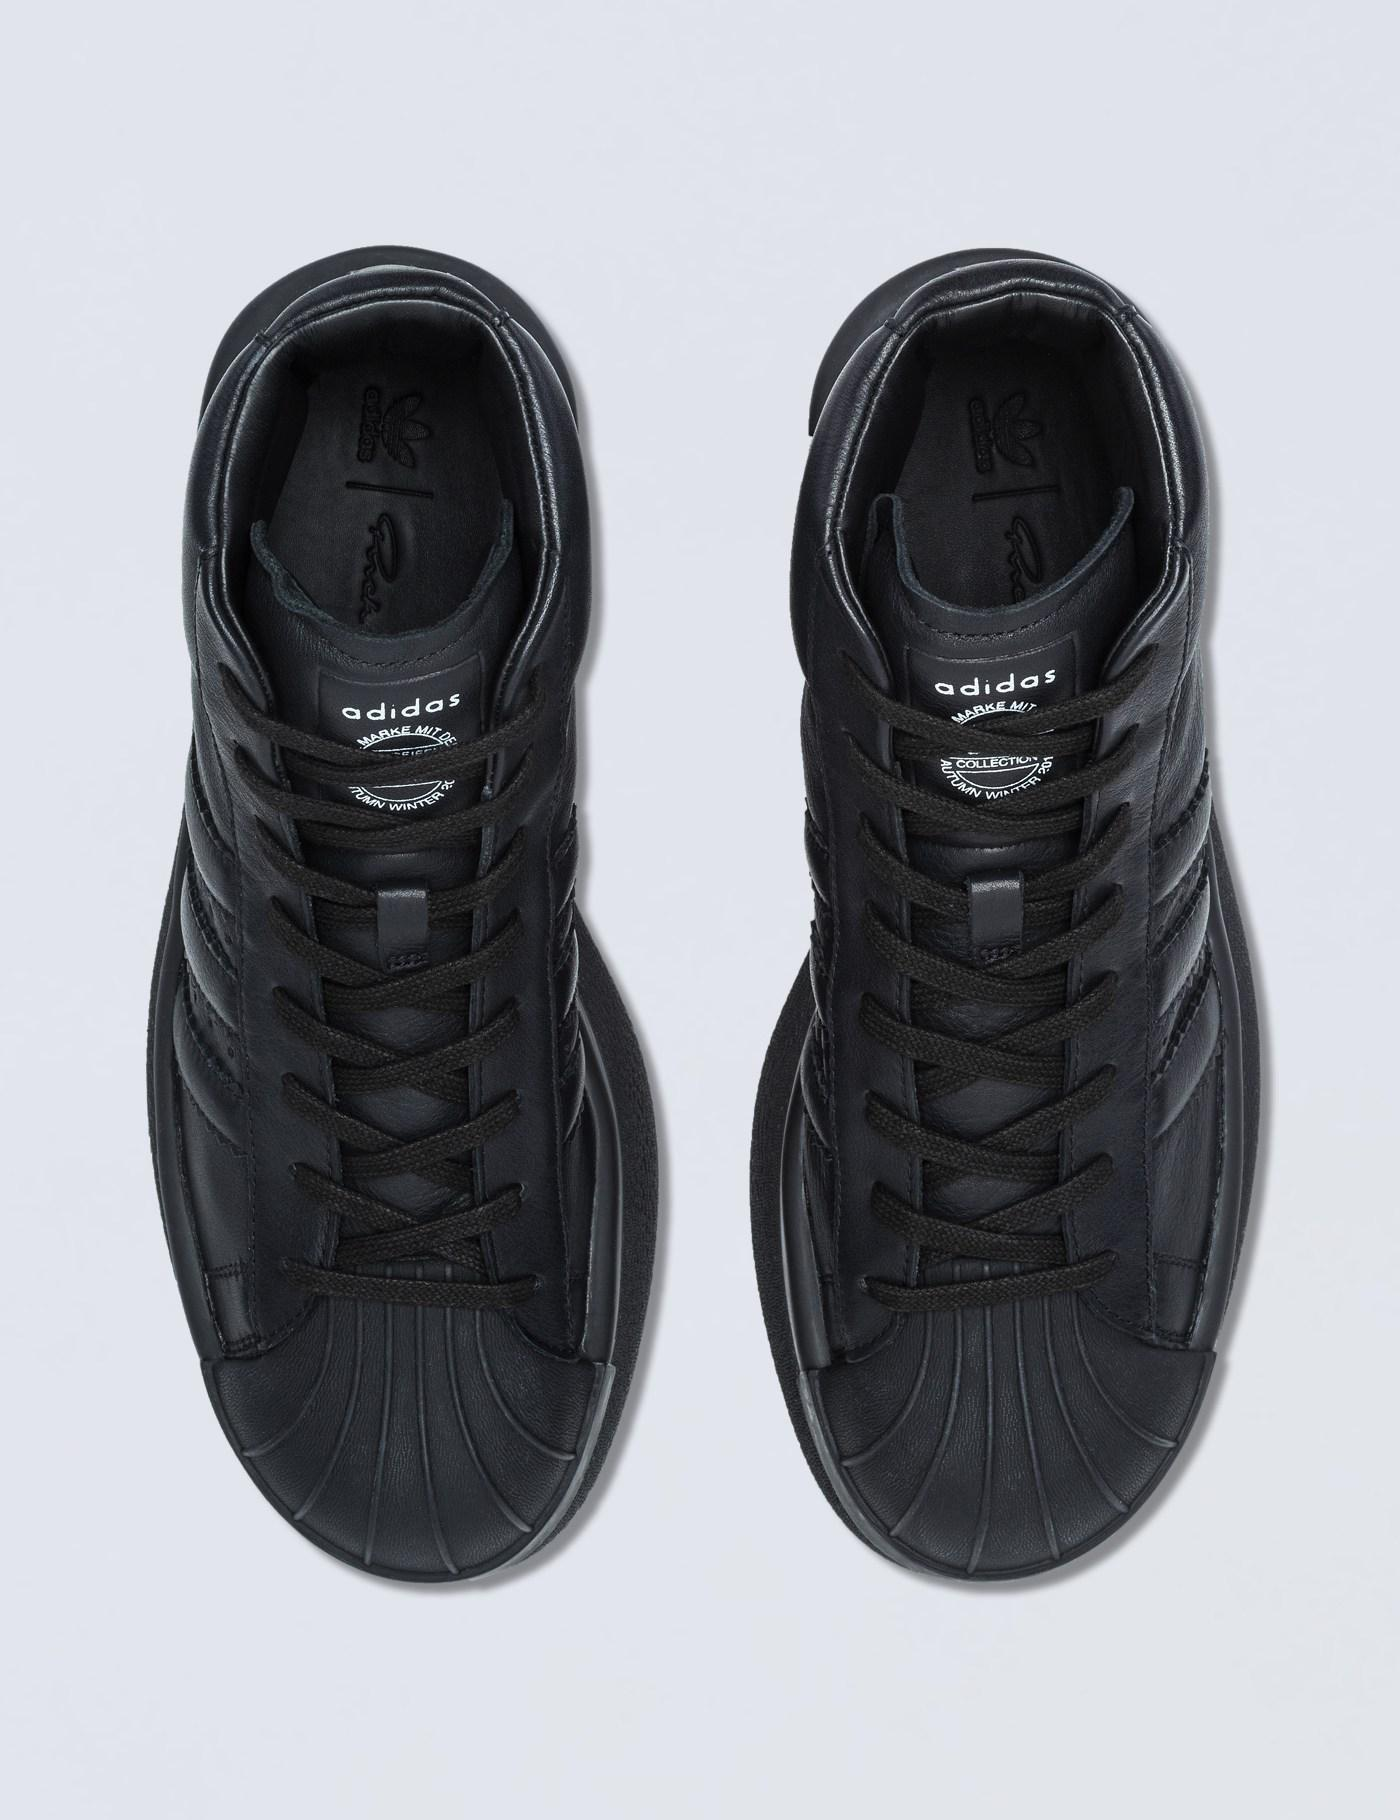 Adidas Shoes With Shark Tooth Soles